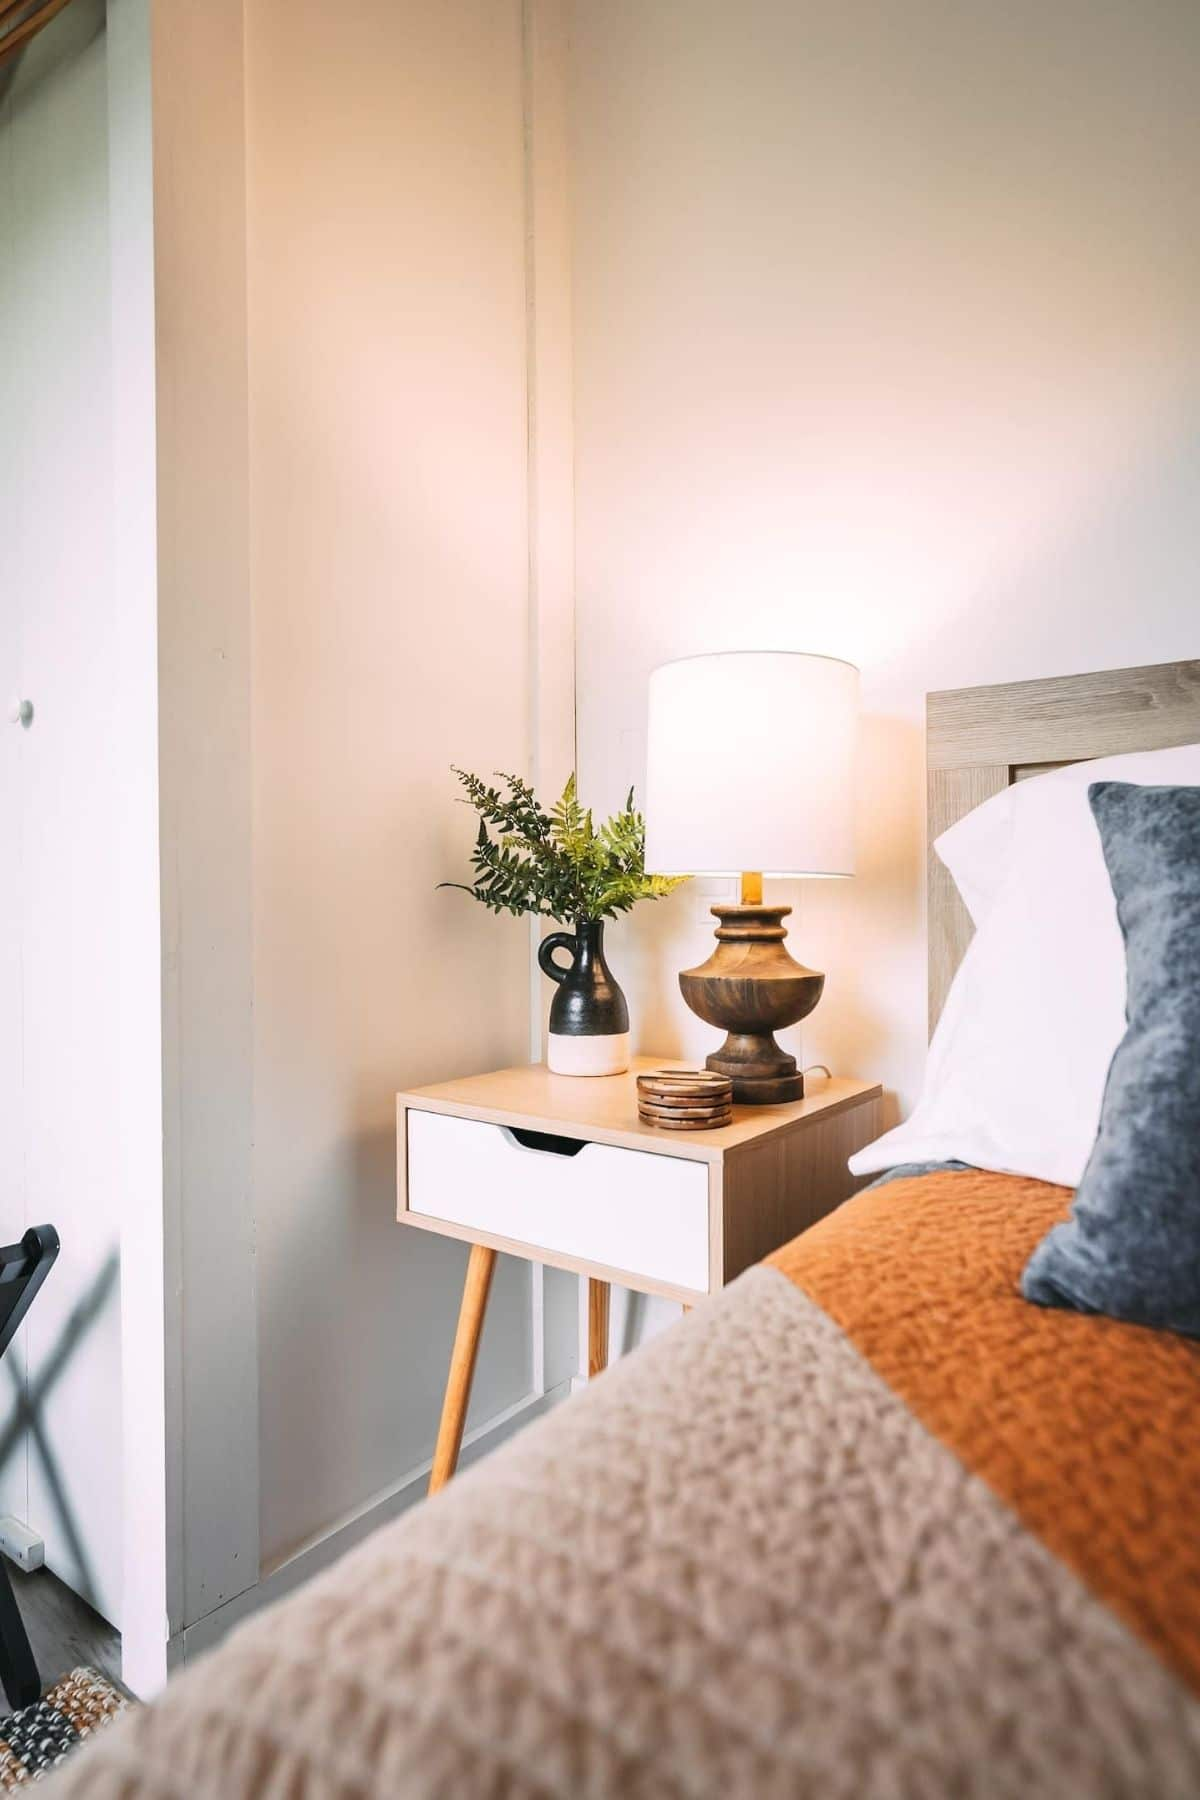 Small modern side table next to bed in tiny house bedroom with white walls